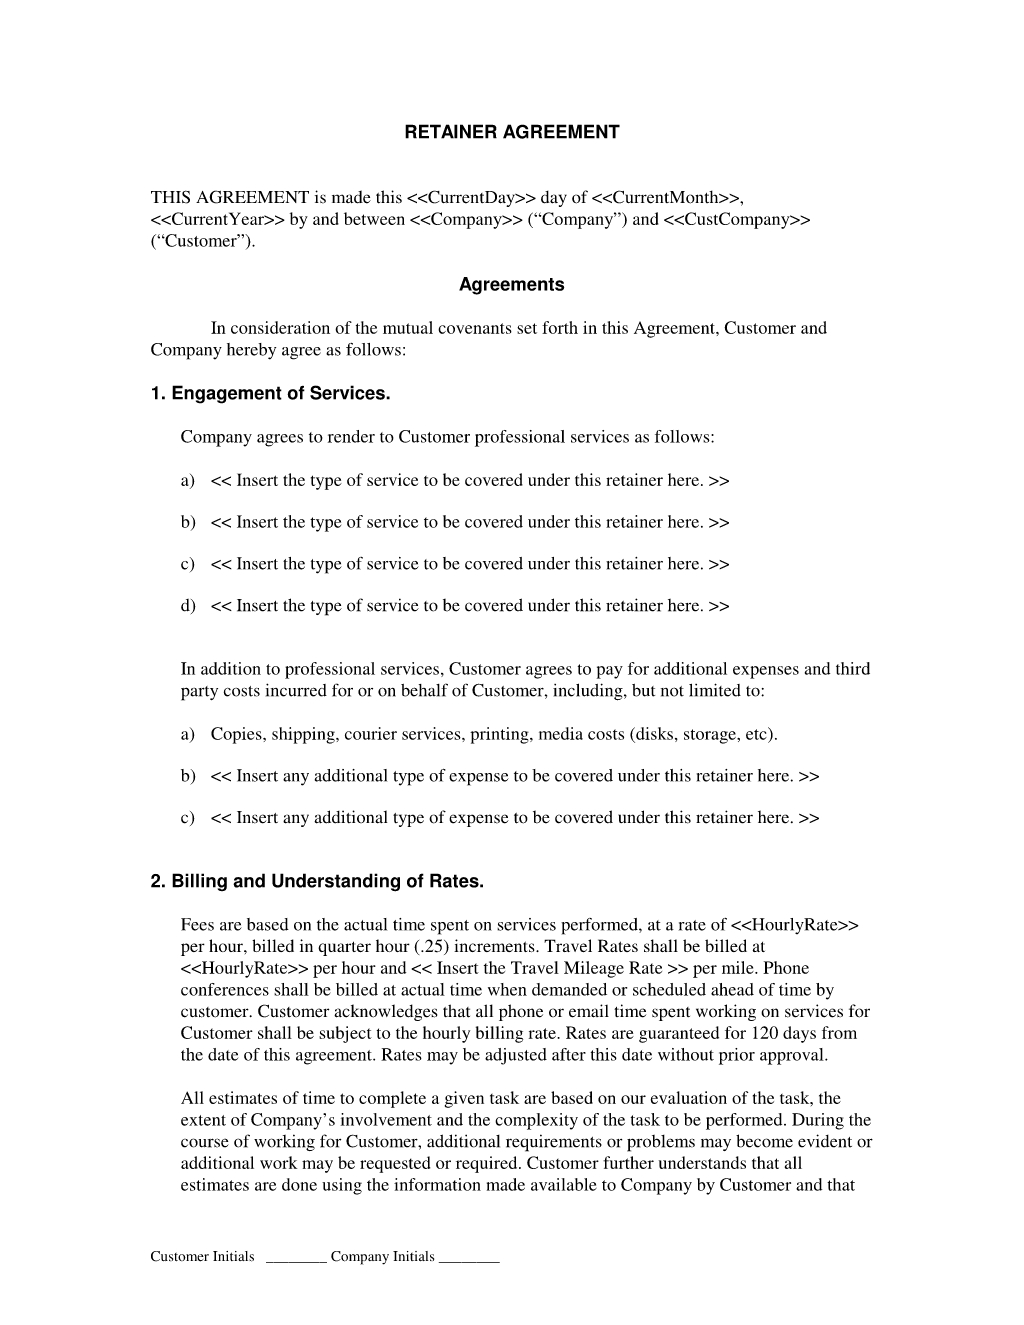 Free Retainer Agreement Template For Selfemployed  Bonsai  Bonsai For Design Retainer Agreement Templates